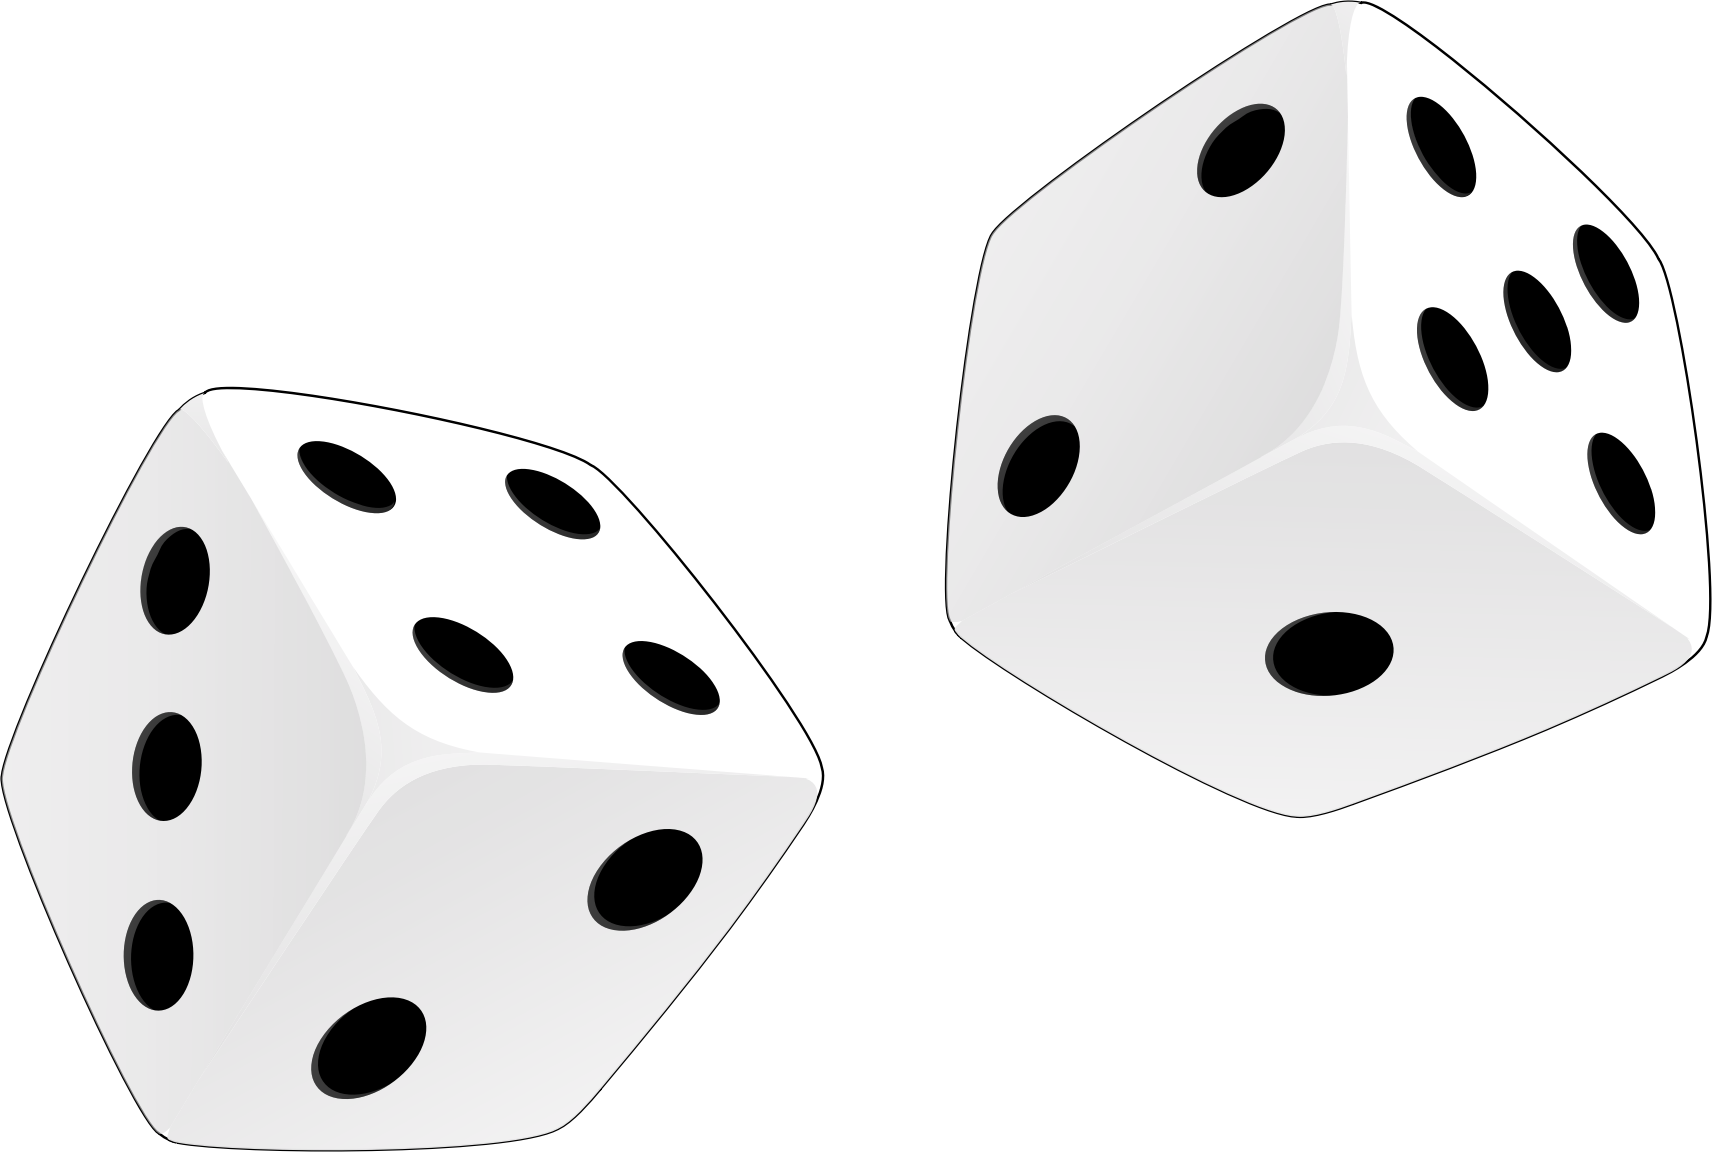 dice png clear